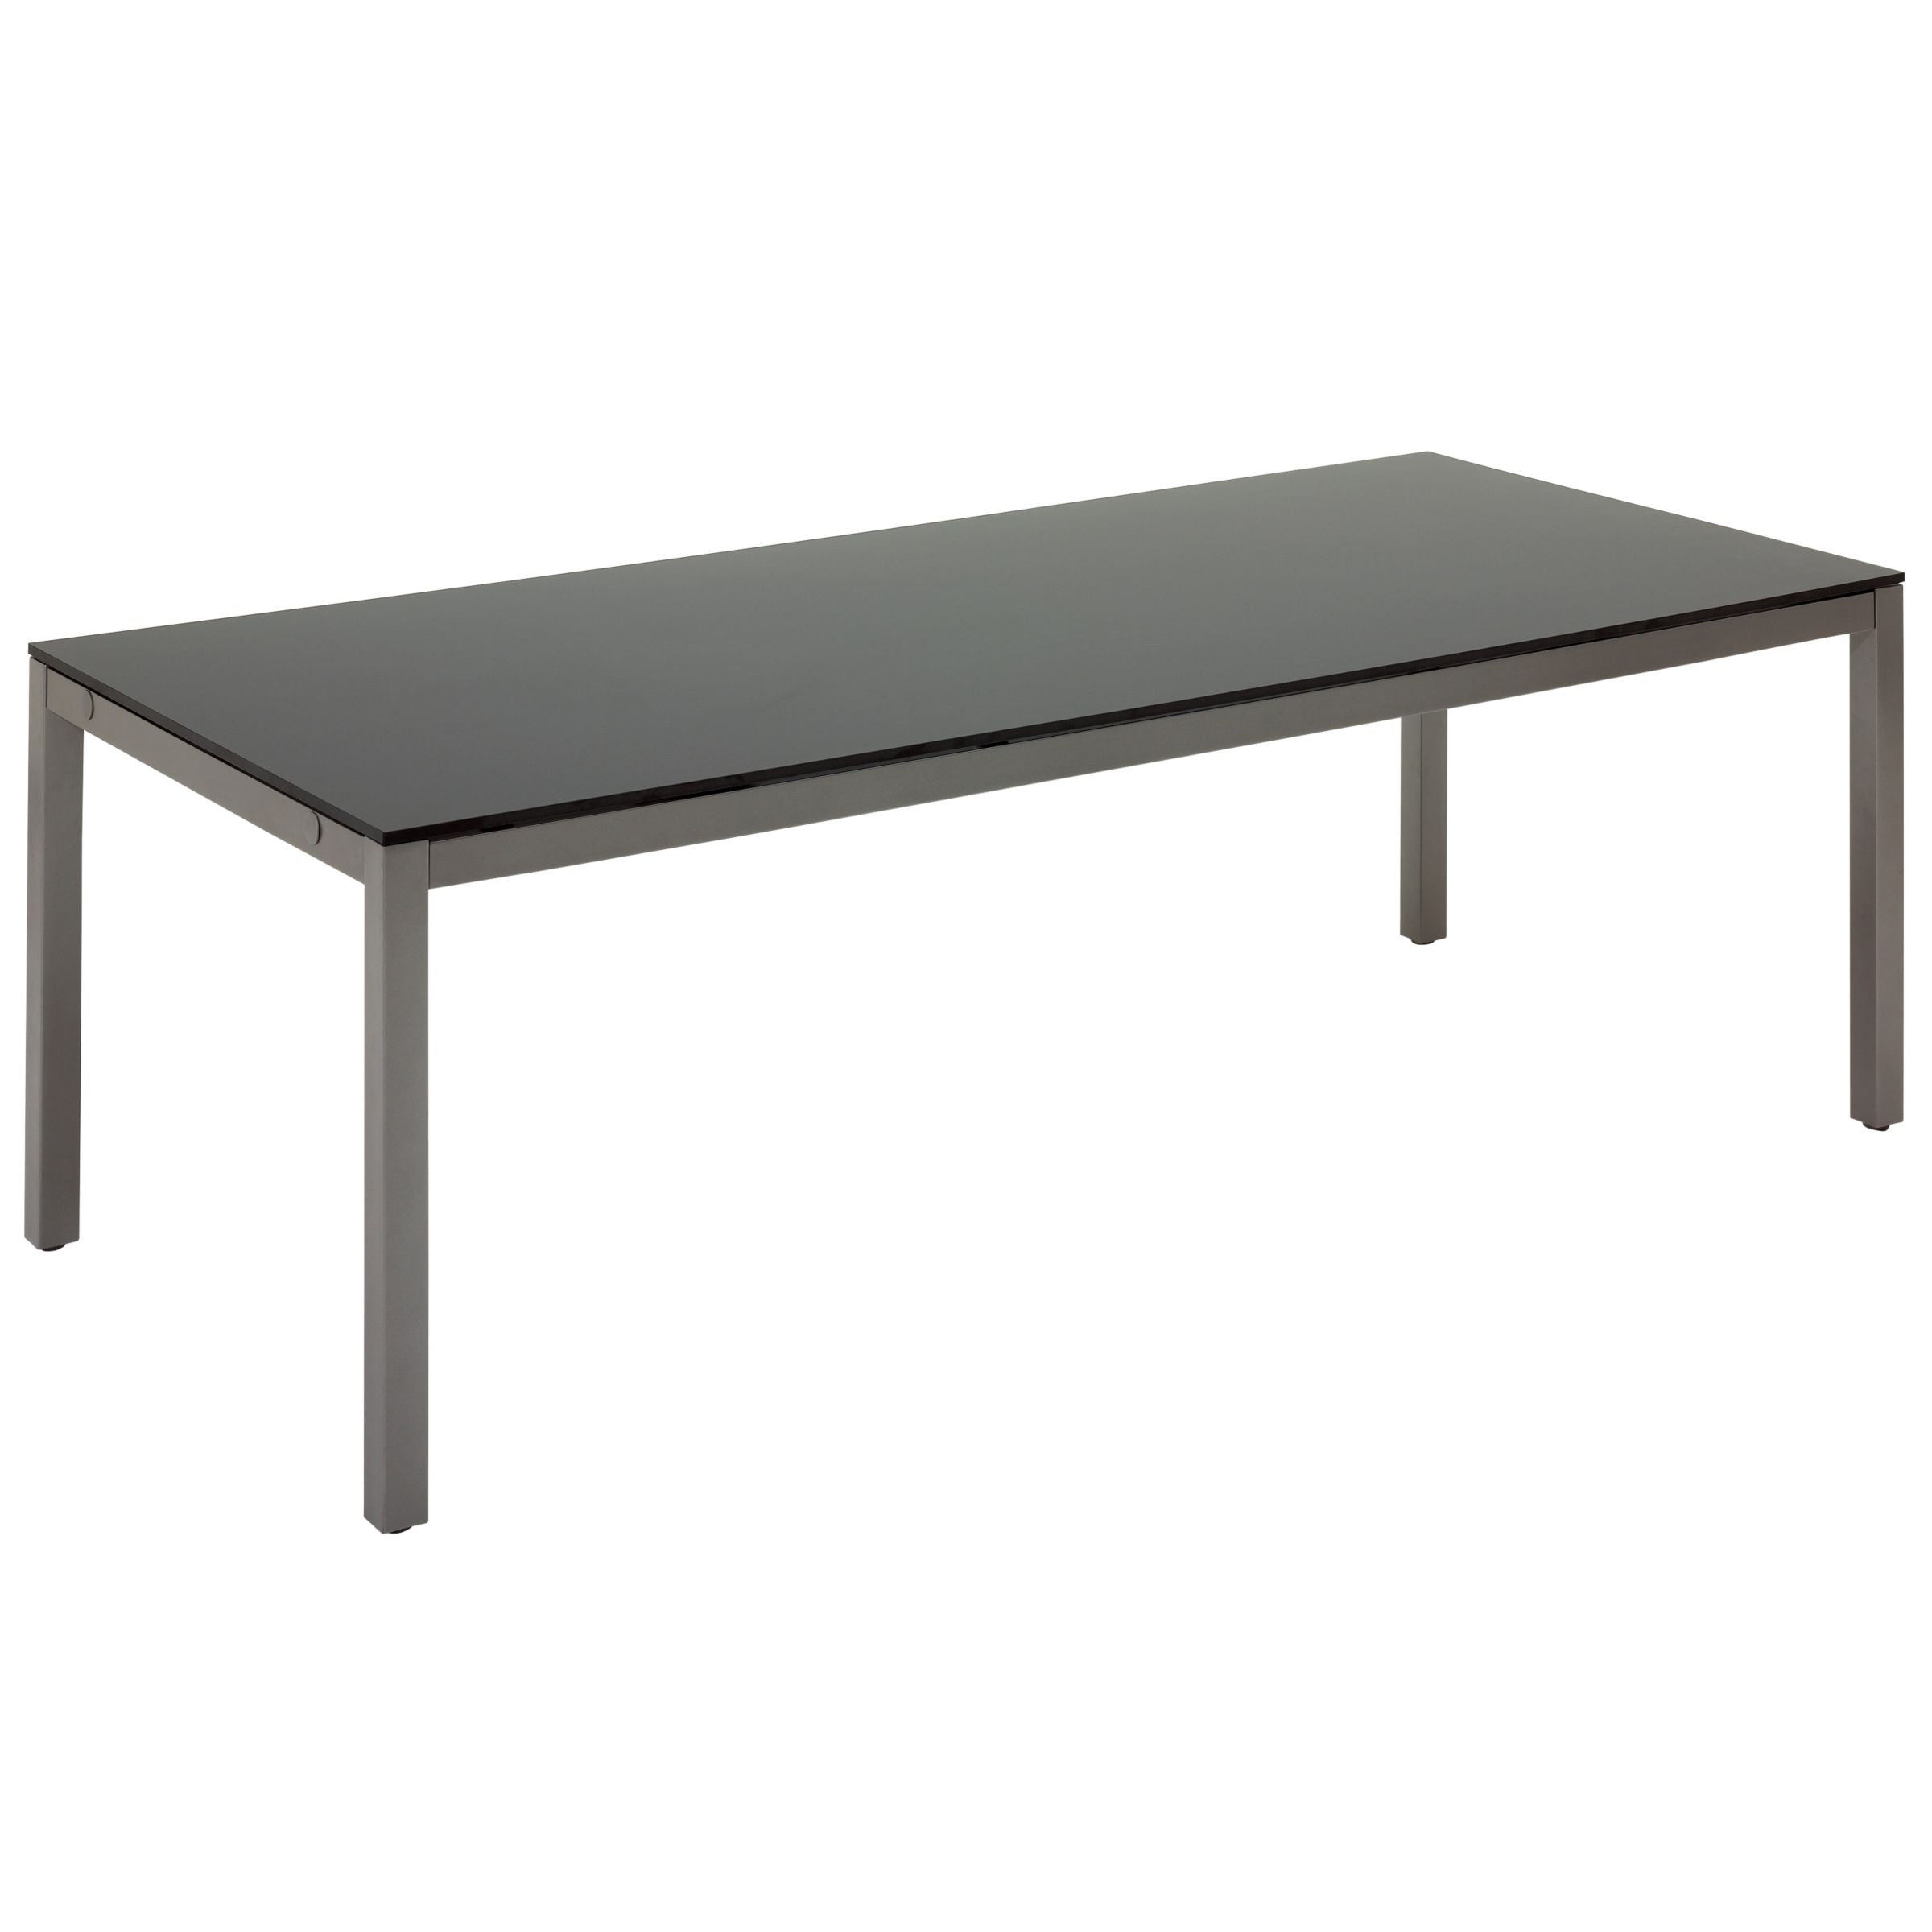 Gloster Azore Rectangular 8 Seater Outdoor Dining Table, Tungsten/HPL